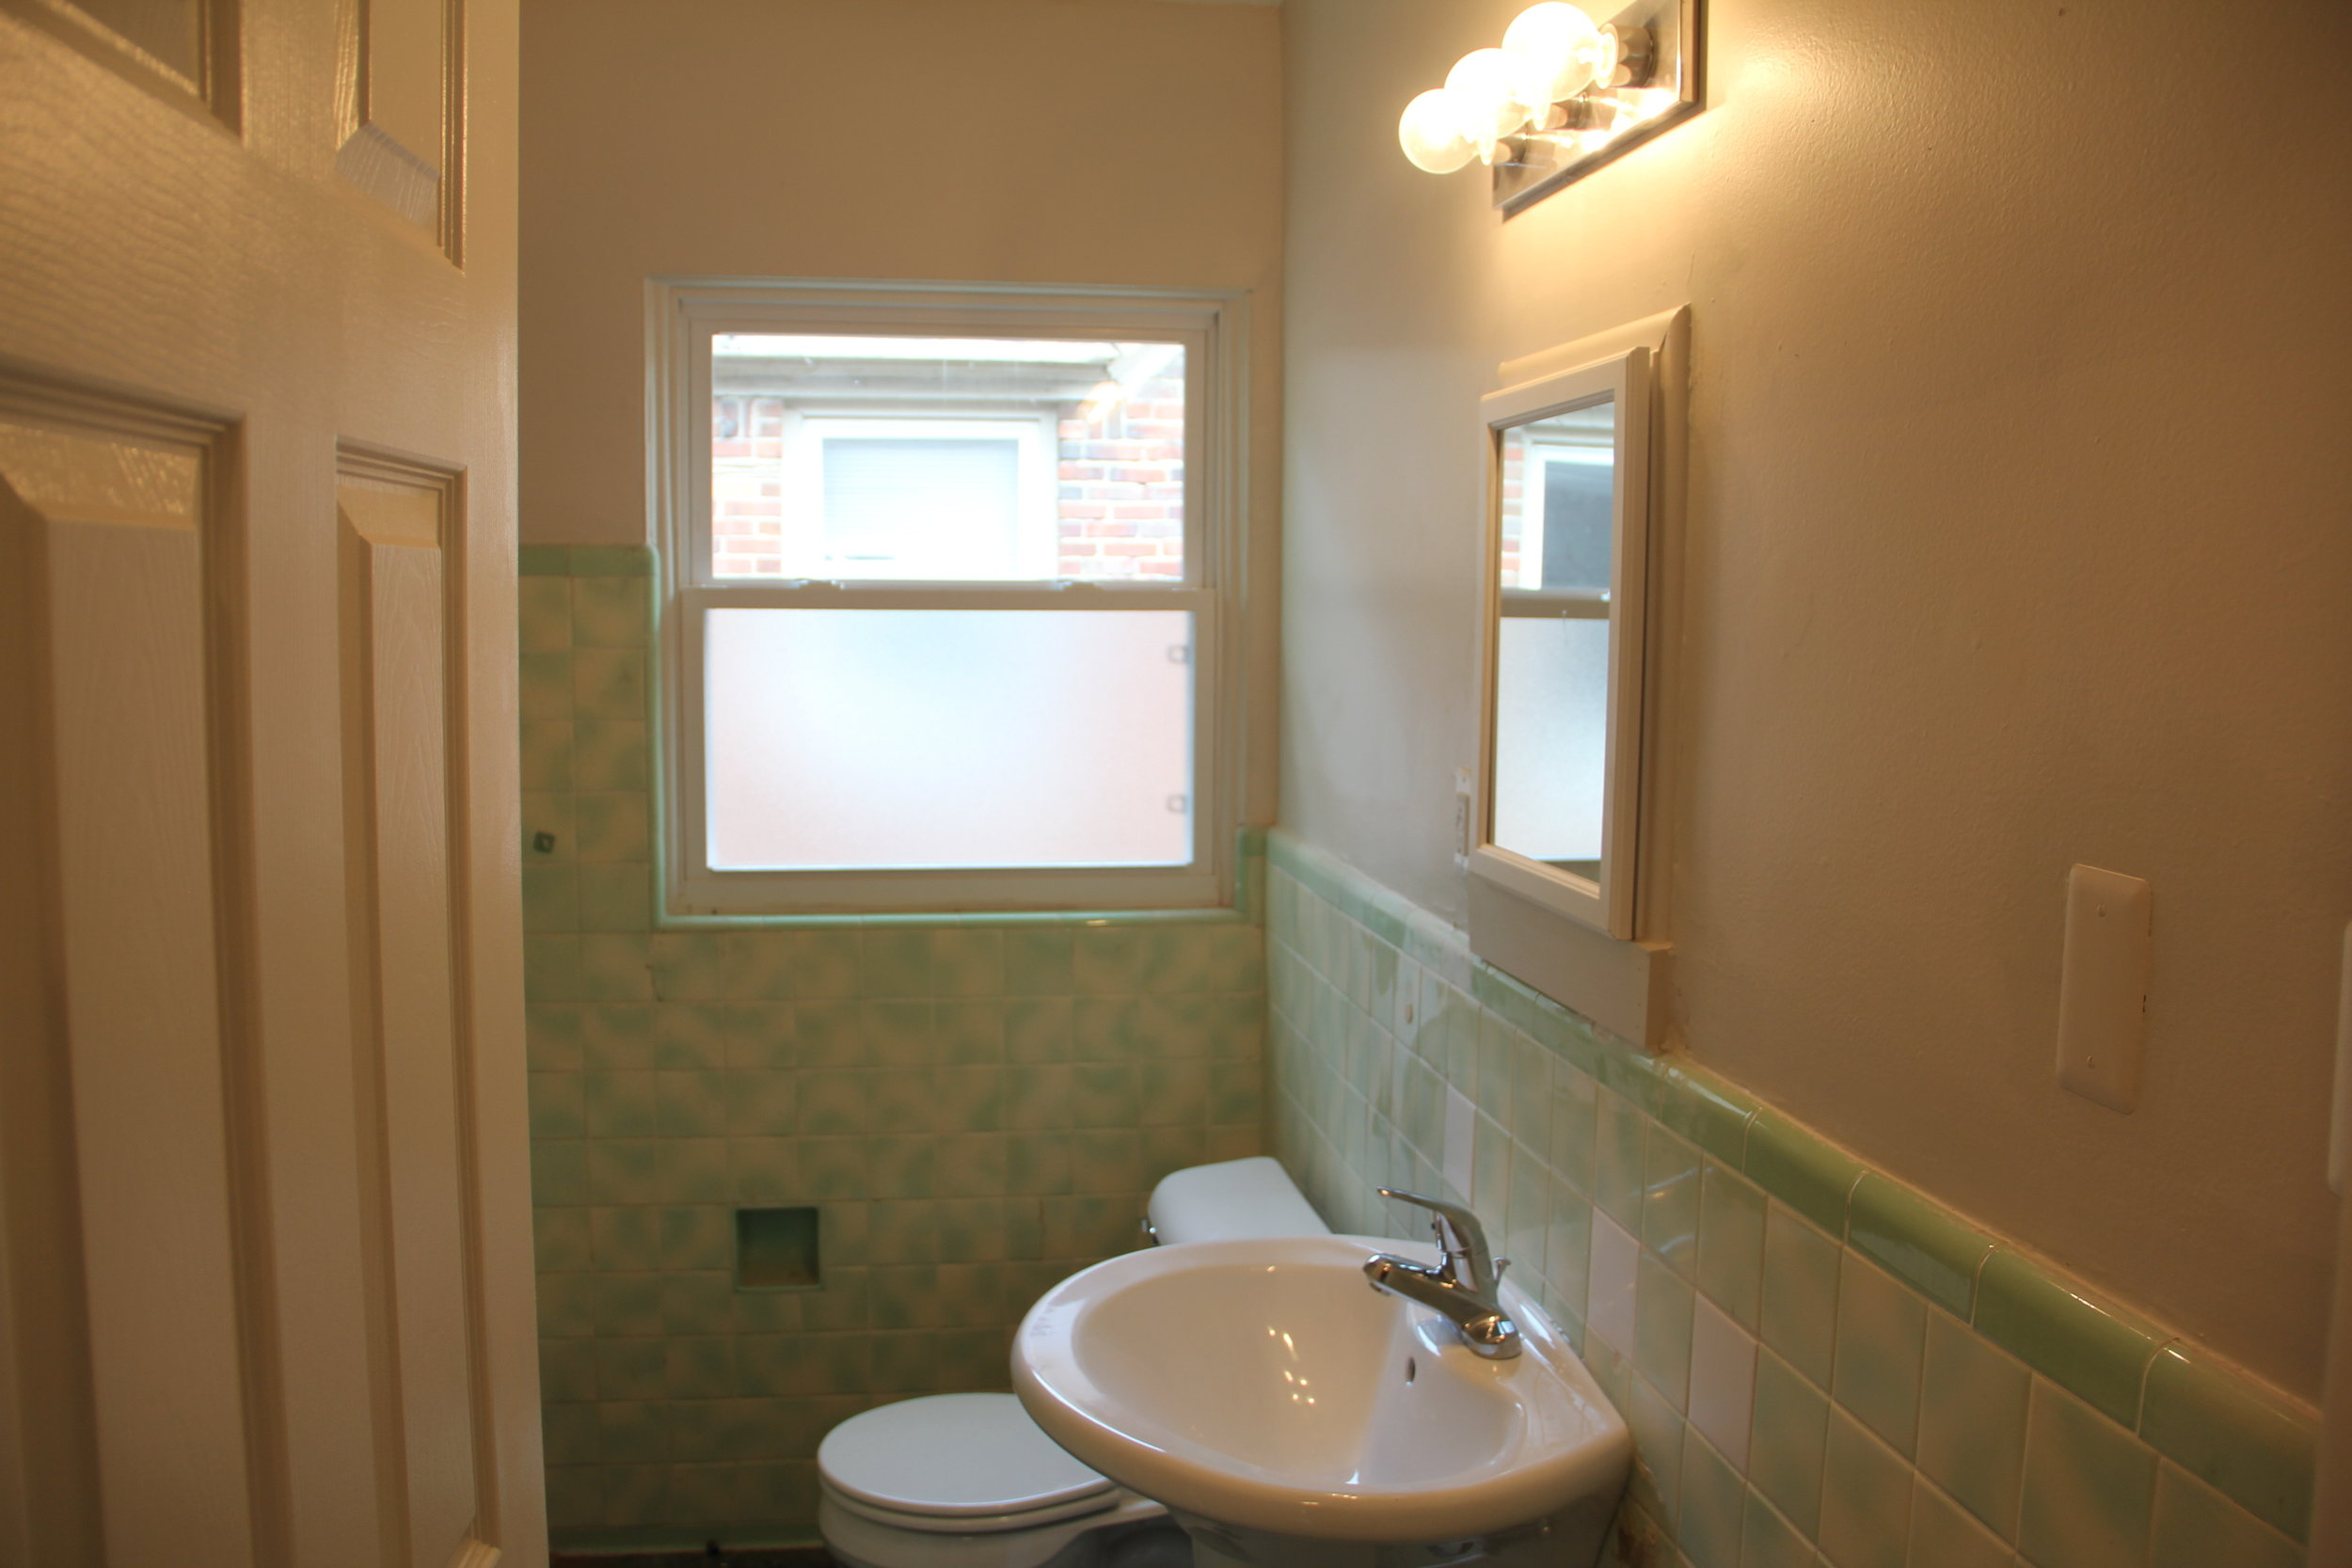 17521 Roselawn Bathroom 2.JPG